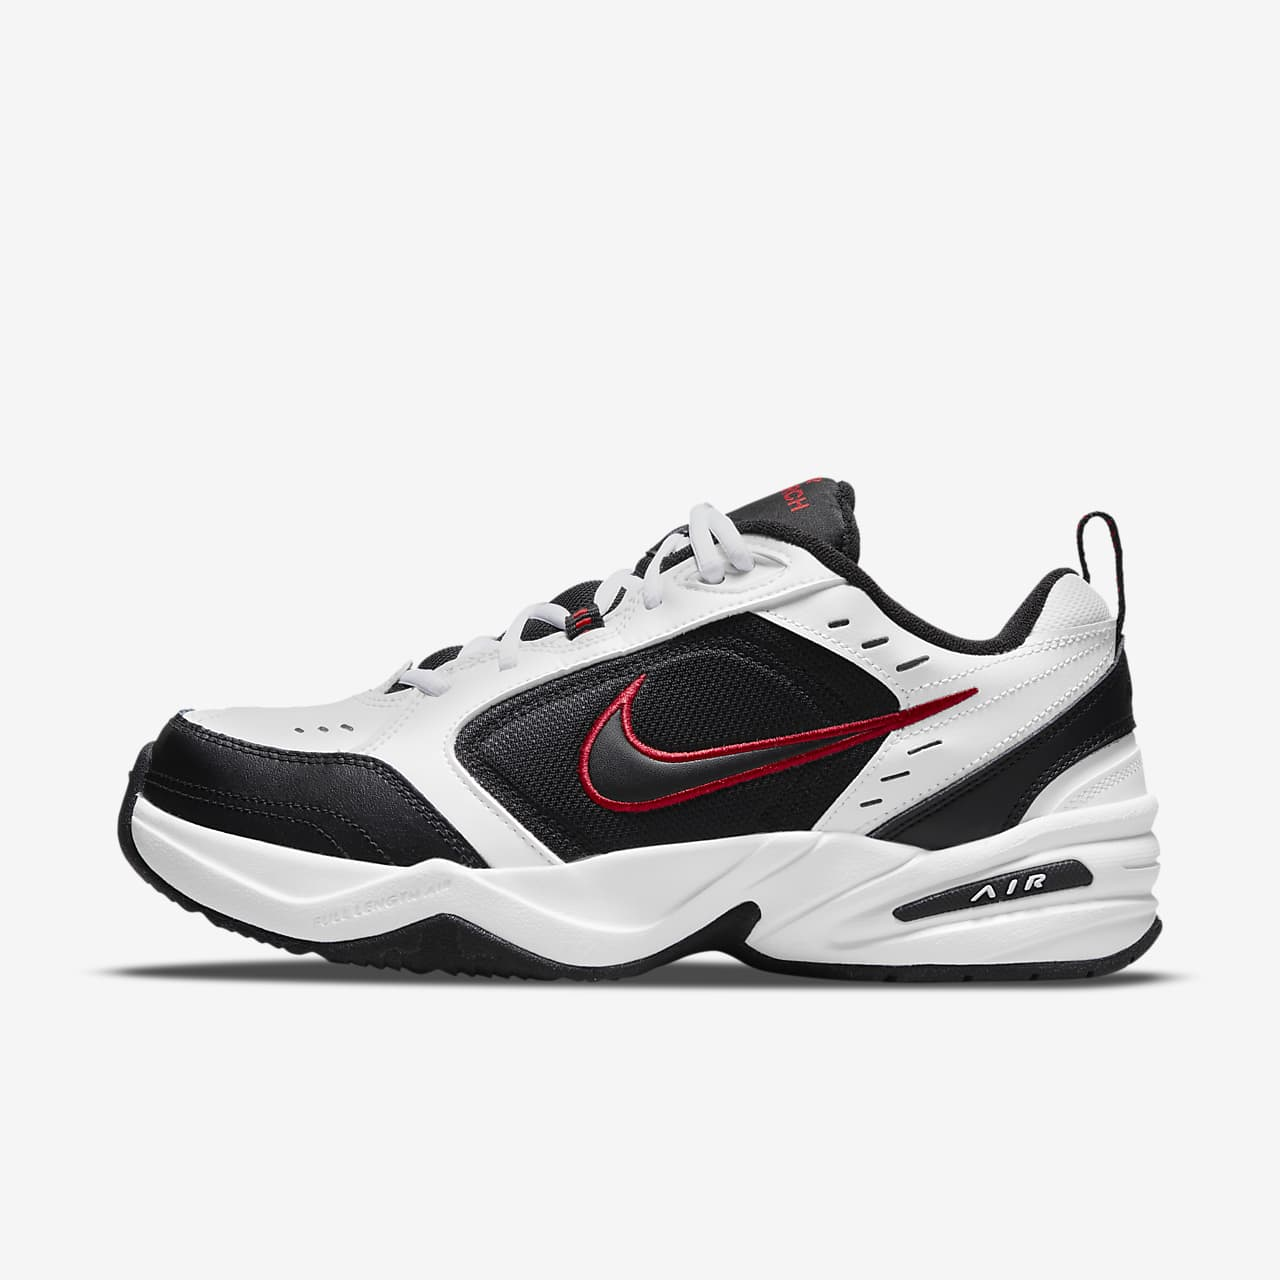 fff60541b11 Nike Air Monarch IV (Extra Wide) Lifestyle Gym Shoe. Nike.com